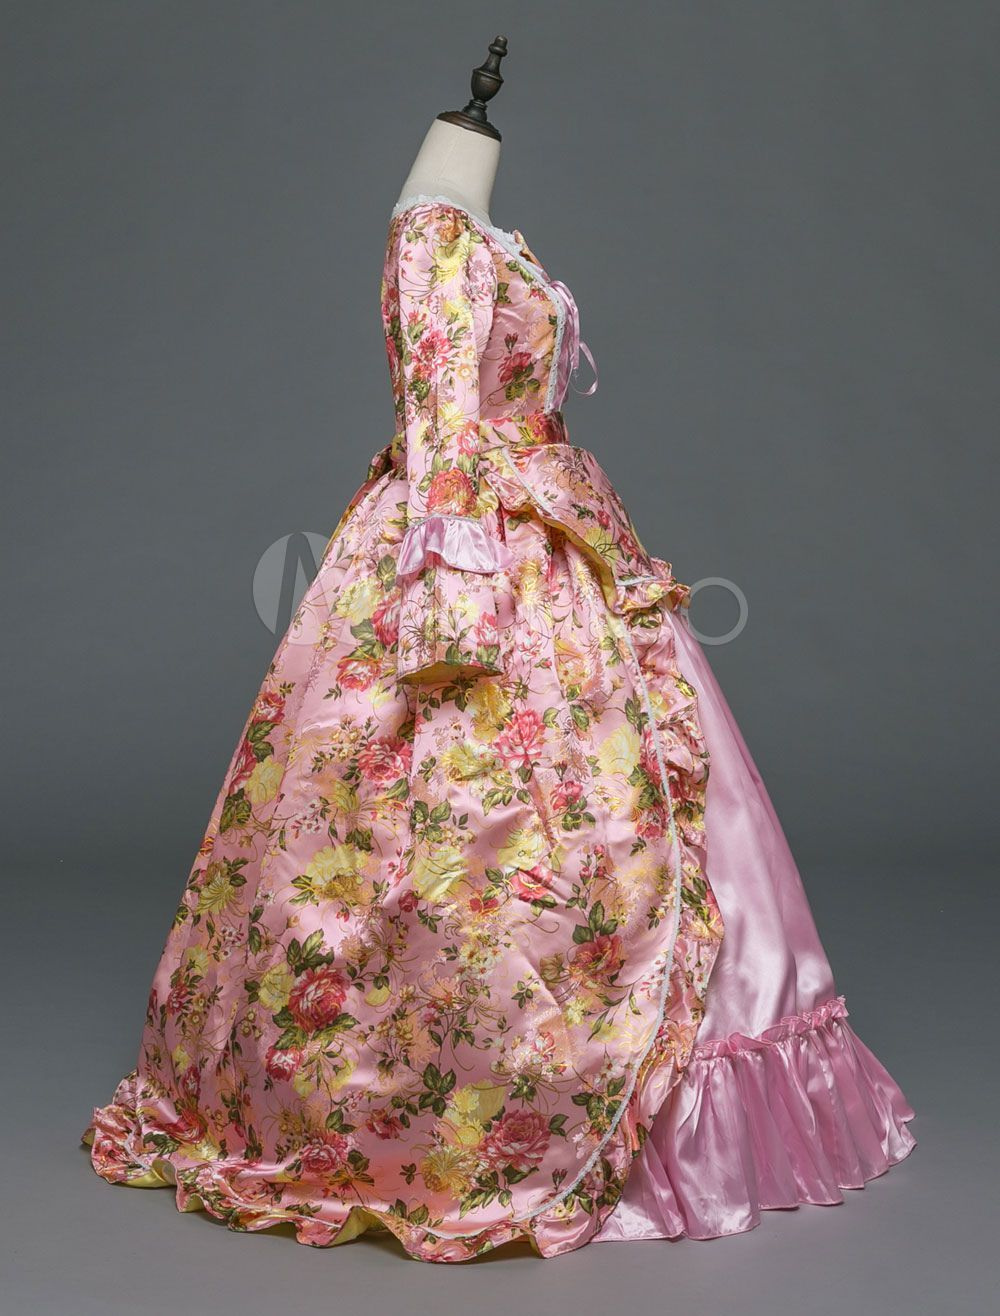 Vintage Costume Halloween Women Rococo Pink Victorian Masquerade Ball Gowns Royal Long Sleeve Retro Co Masquerade Ball Gowns Halloween Women Masquerade Dresses [ 1316 x 1000 Pixel ]